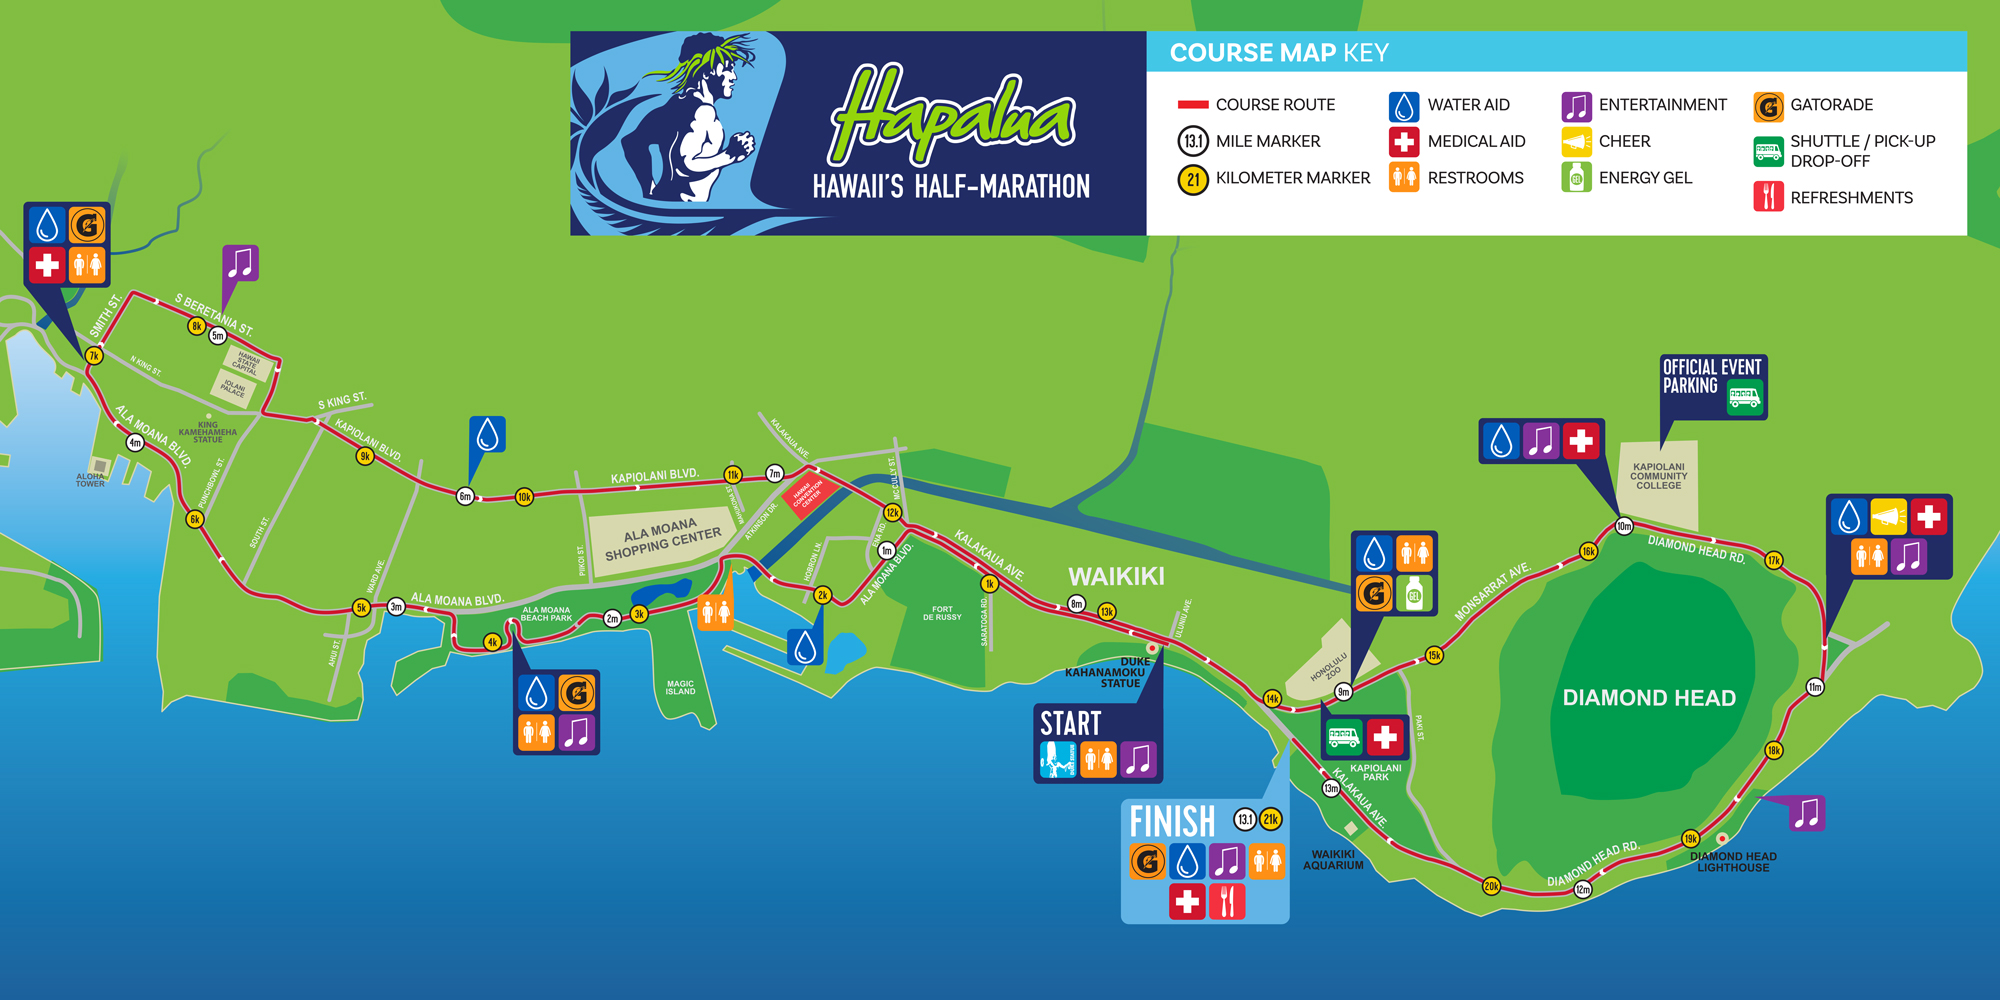 Map of the course